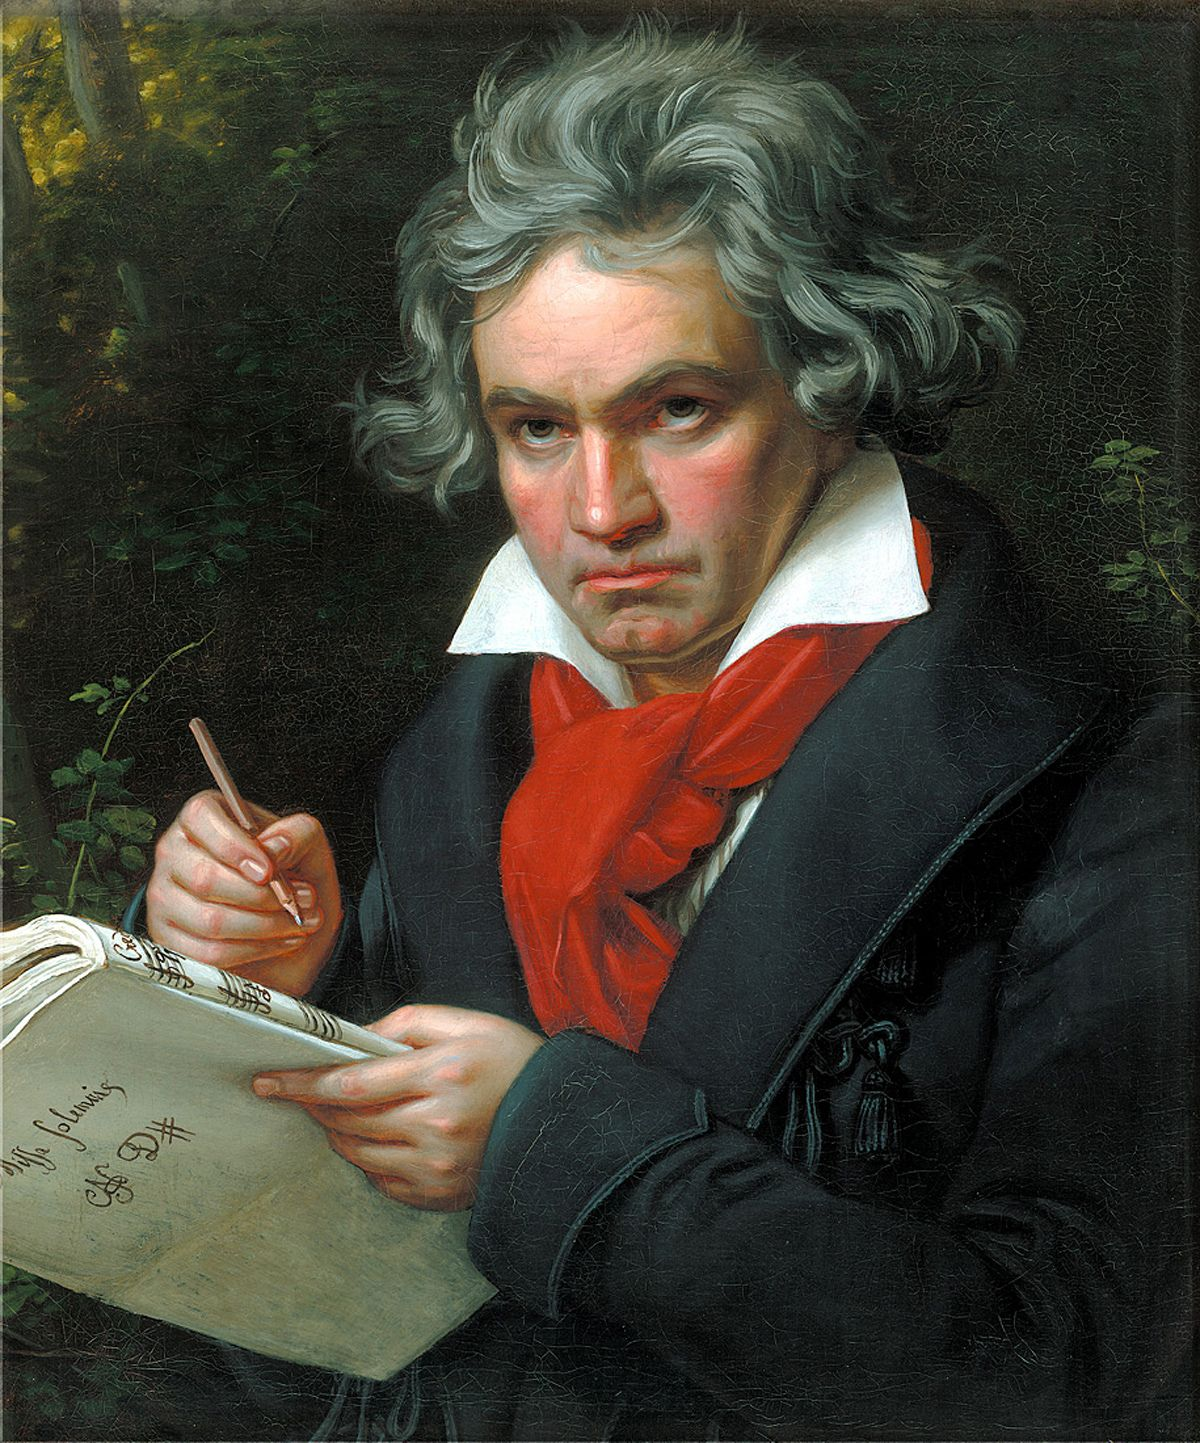 Ludwig van Beethoven was born on December 16, 1770 (it is not known for a fact, but he was baptized on December 17... continue on eeever.com